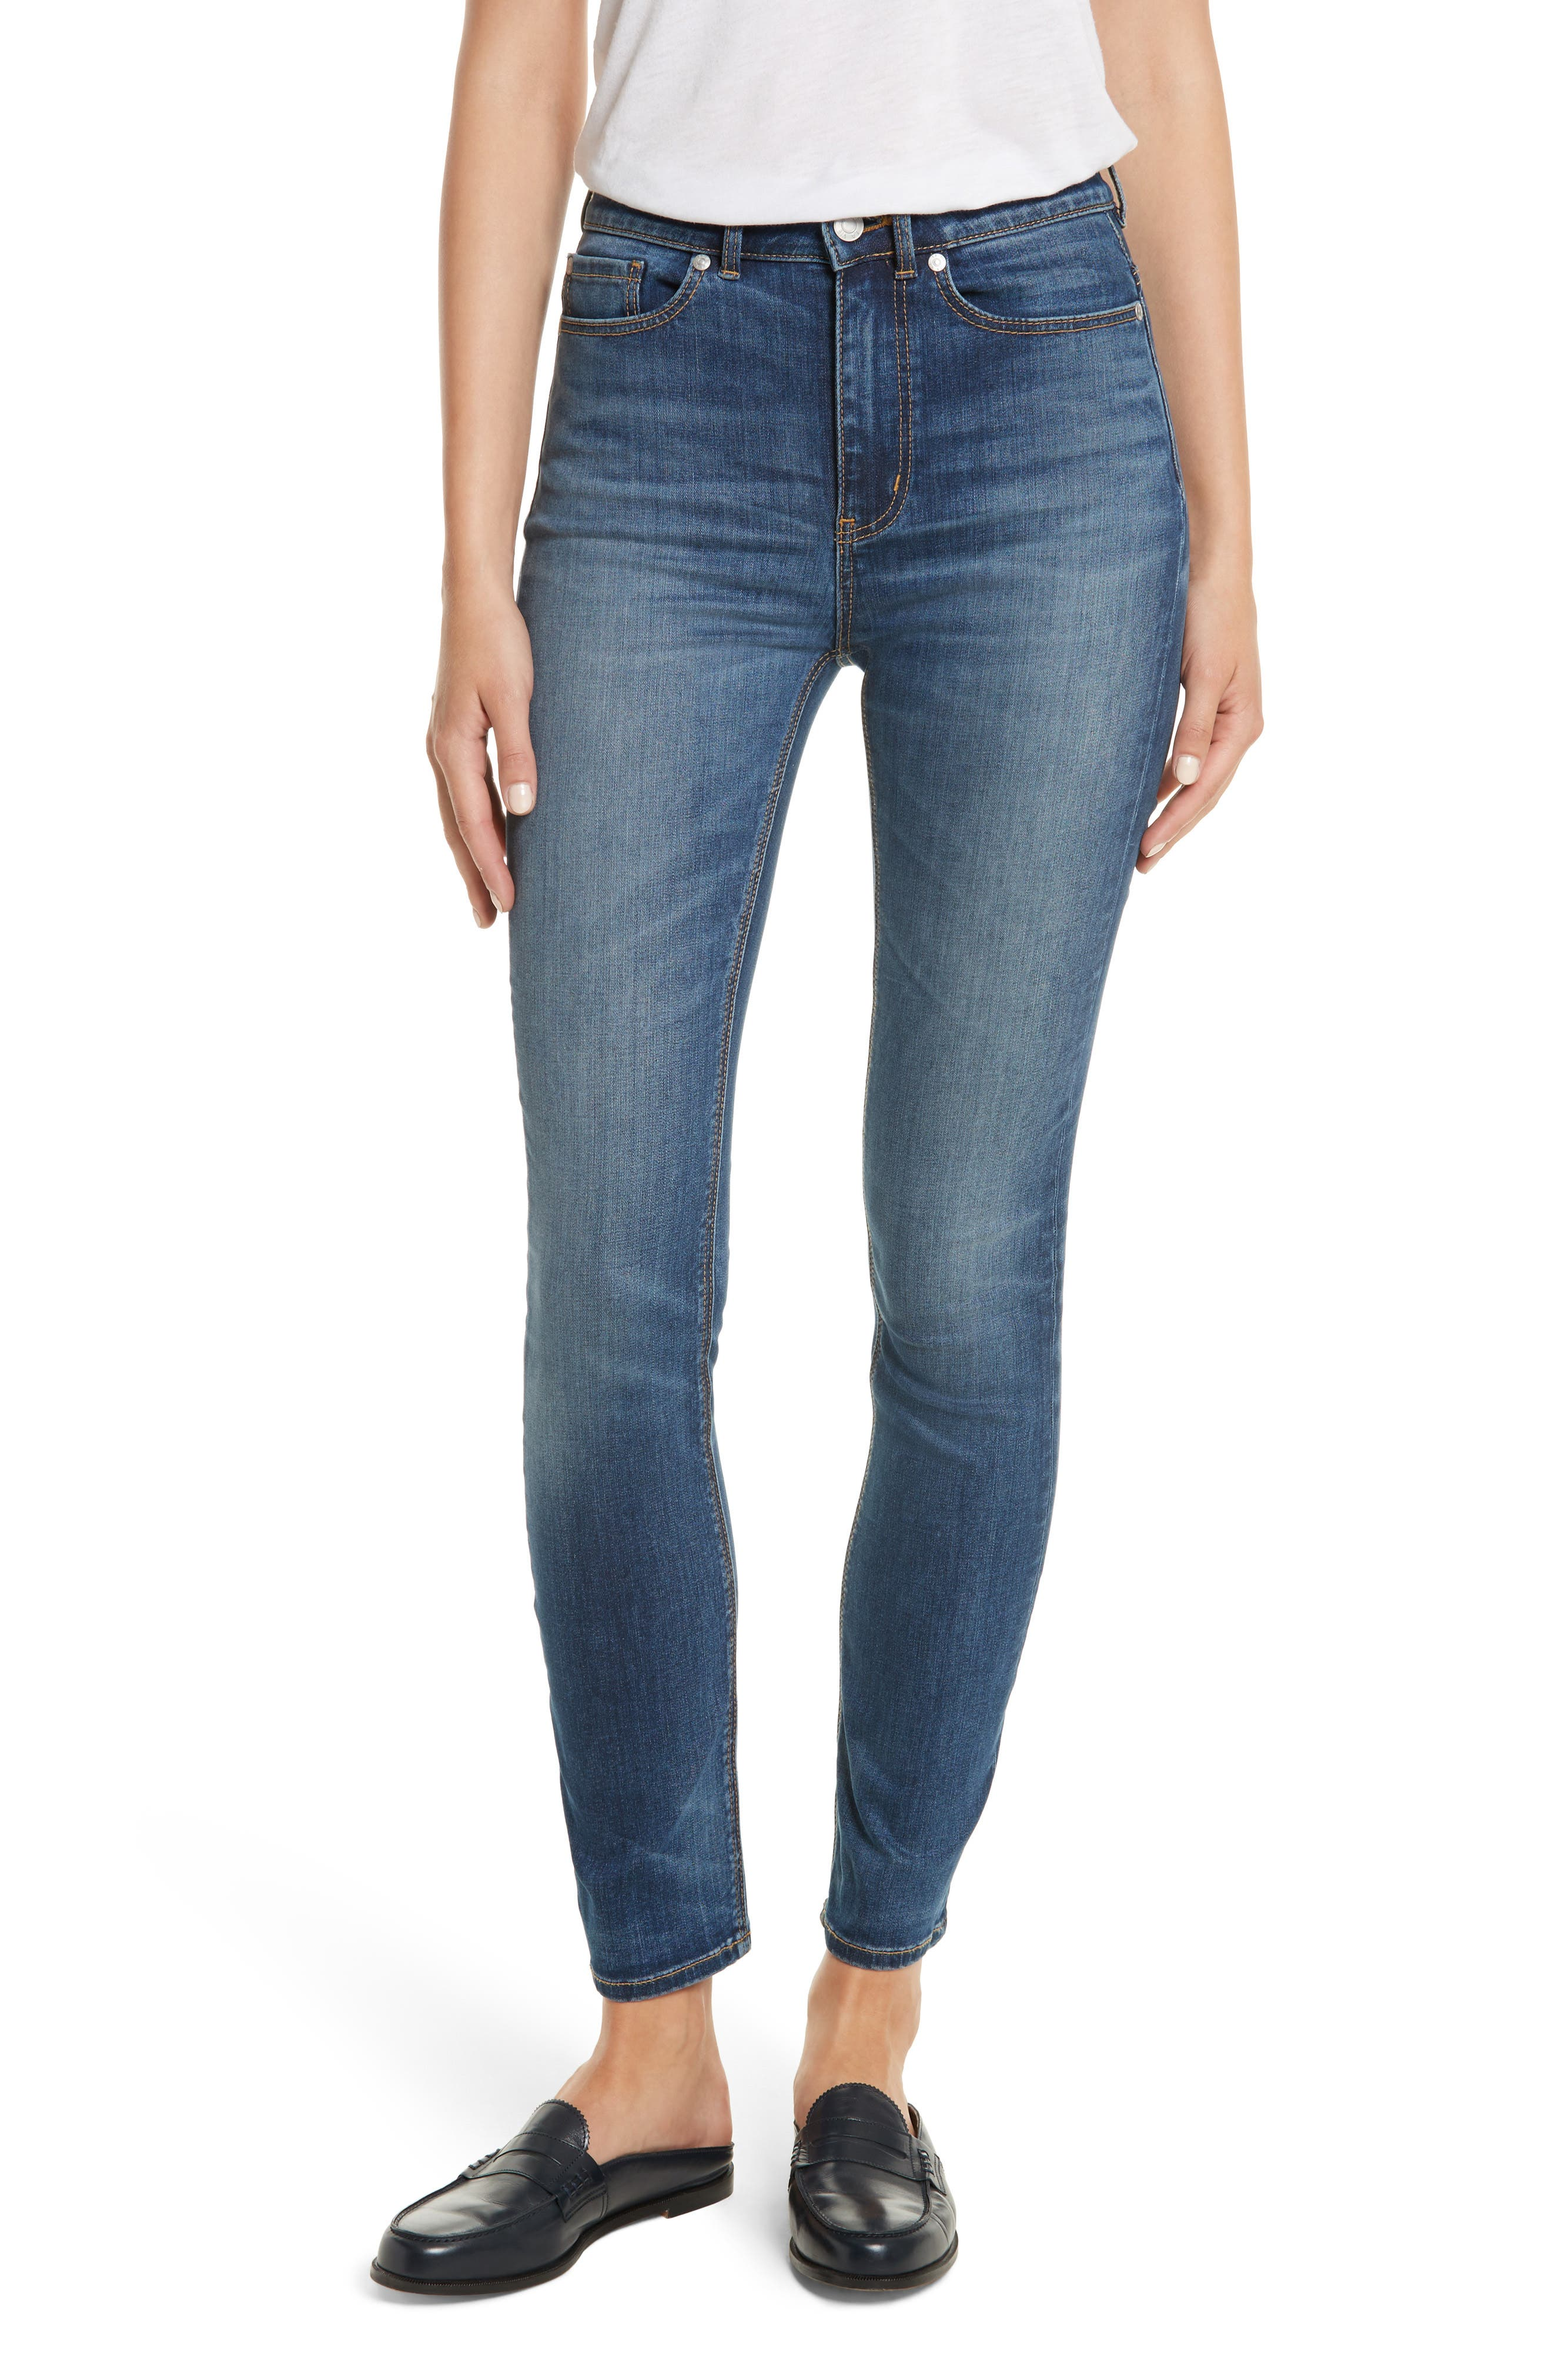 Clemence Skinny Jeans,                         Main,                         color, Verite Wash